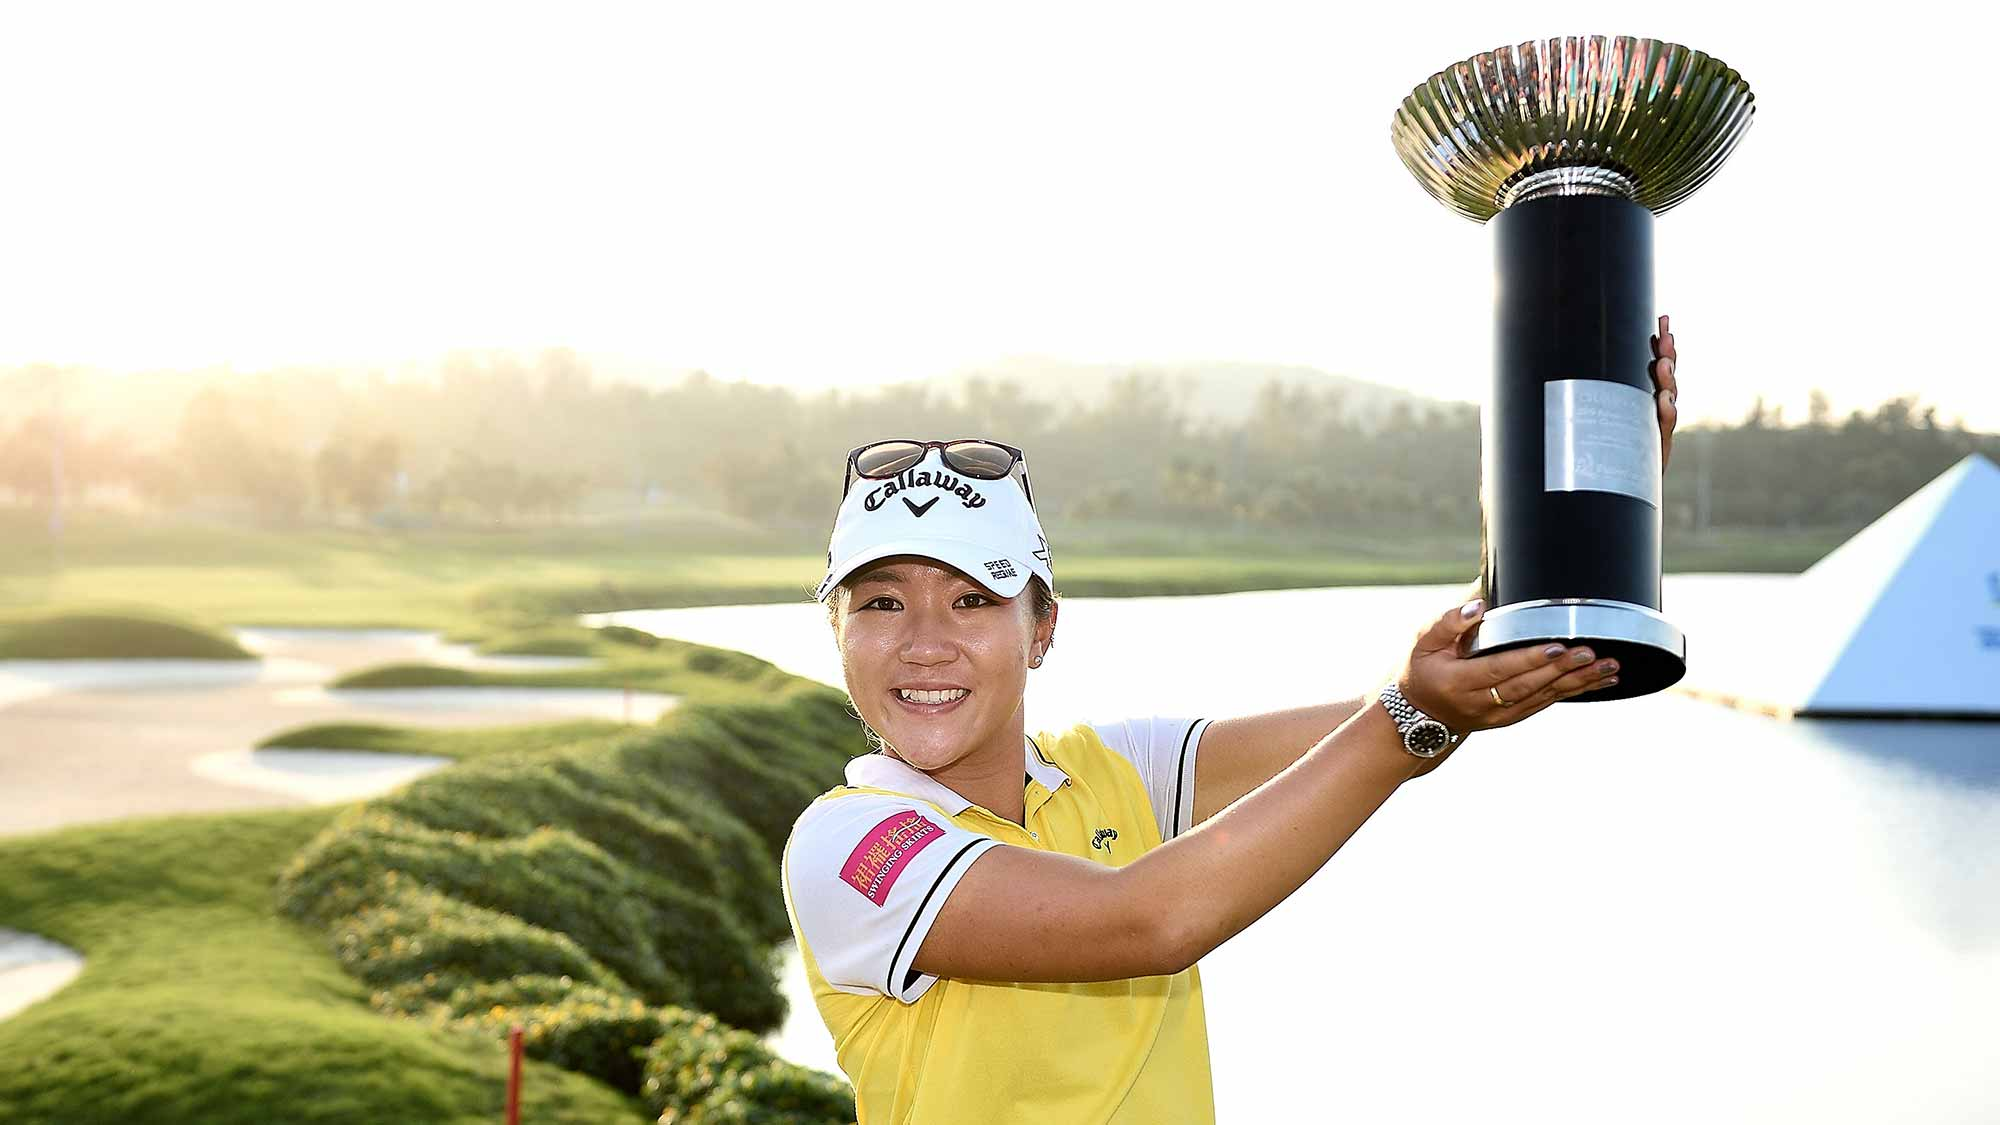 Lydia Ko poses with the trophy on the 18th green after winning 2015 Fubon LPGA Taiwan Championship on October 25, 2015 in Miramar Resort & Country Club